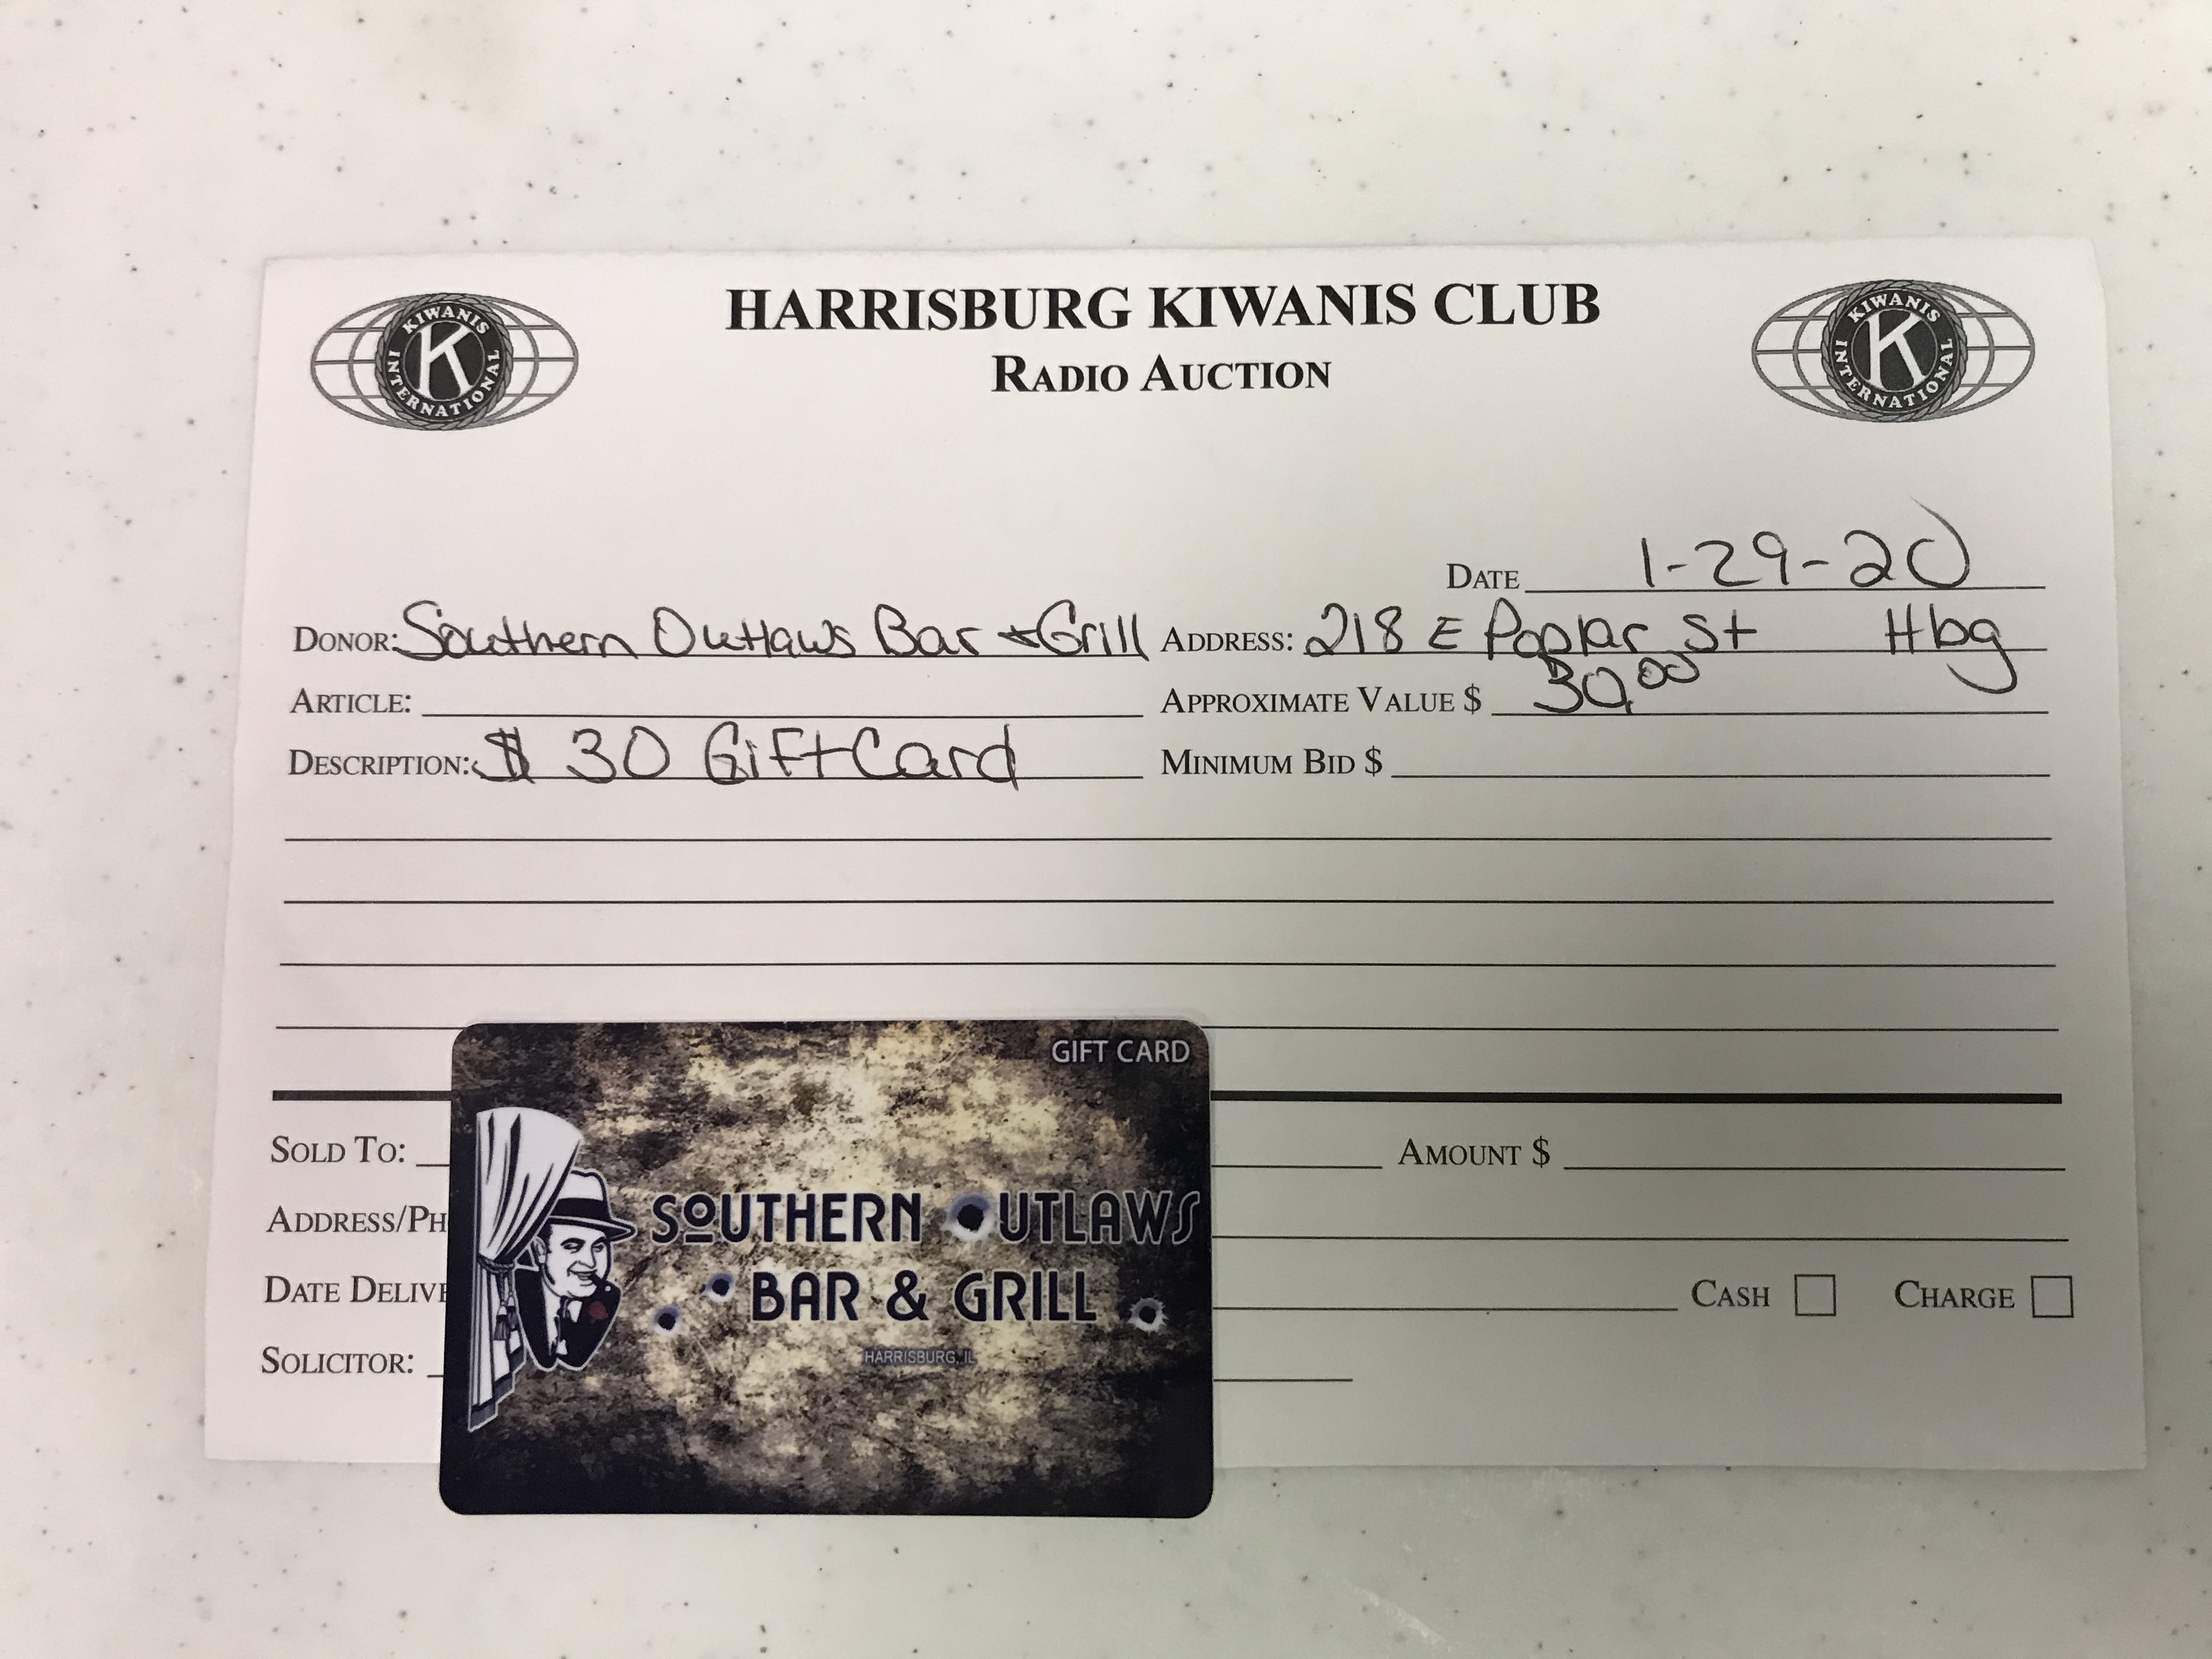 Item 312 - Southern Outlaws Bar & Grill $30 Gift Card